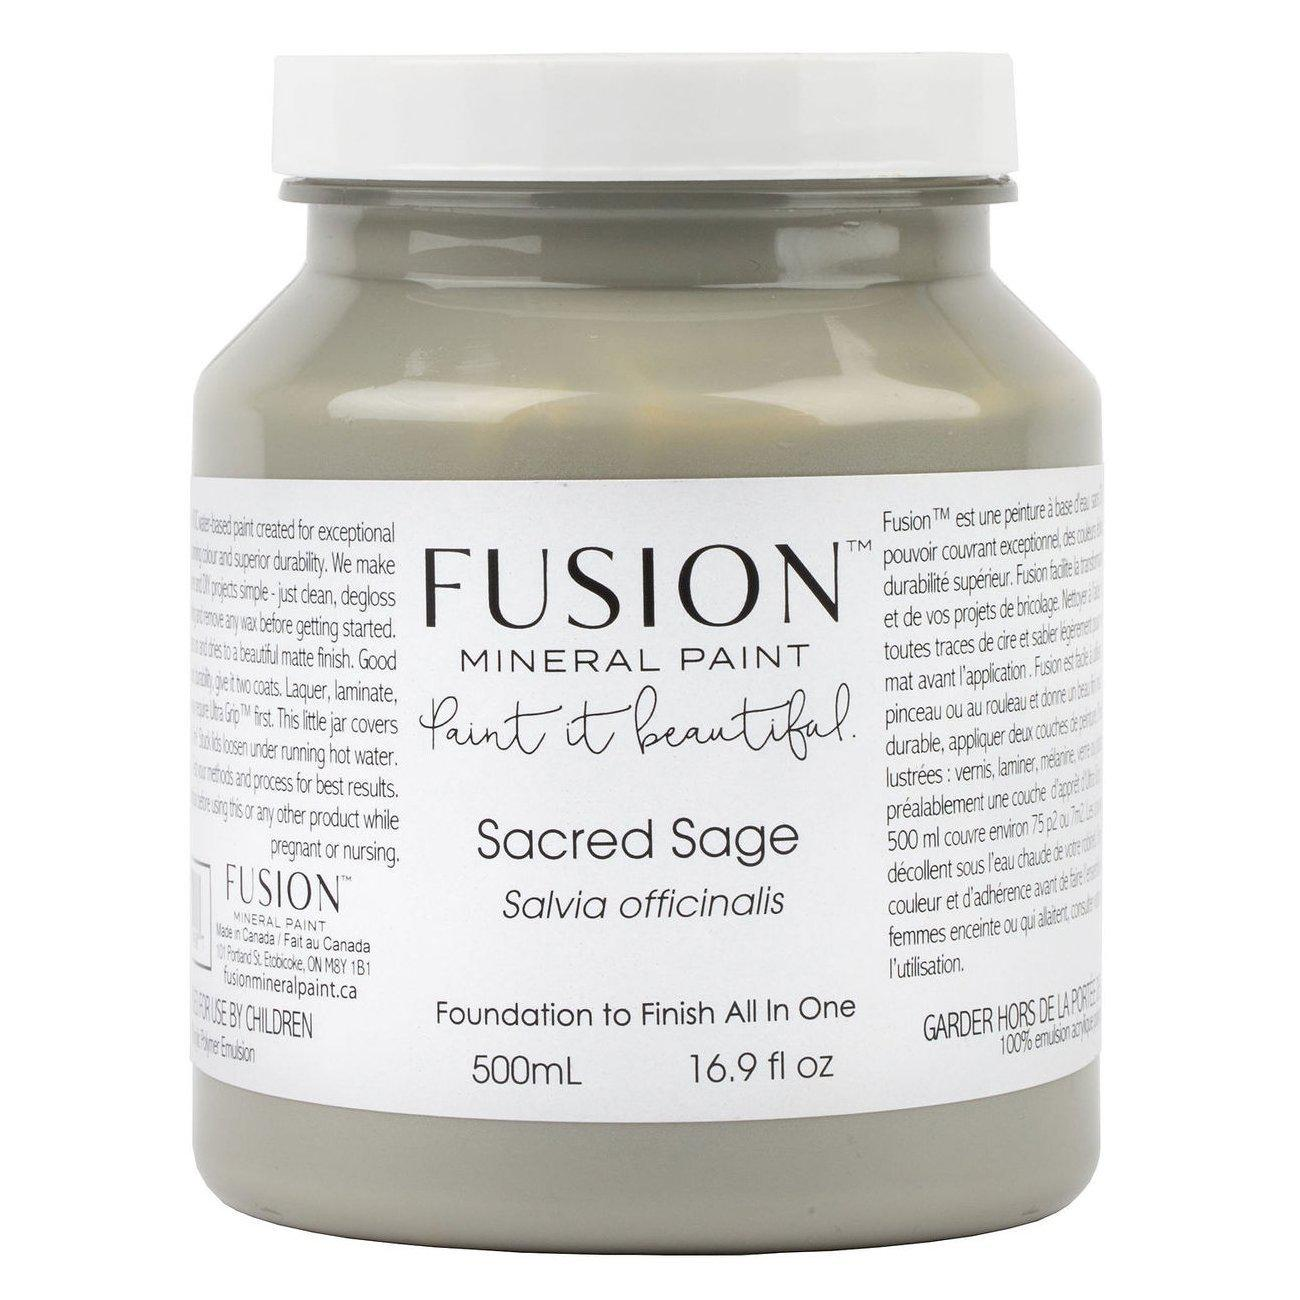 Sacred Sage Fusion Mineral Paint Pint - 500mL Bottle @ The Painted Heirloom